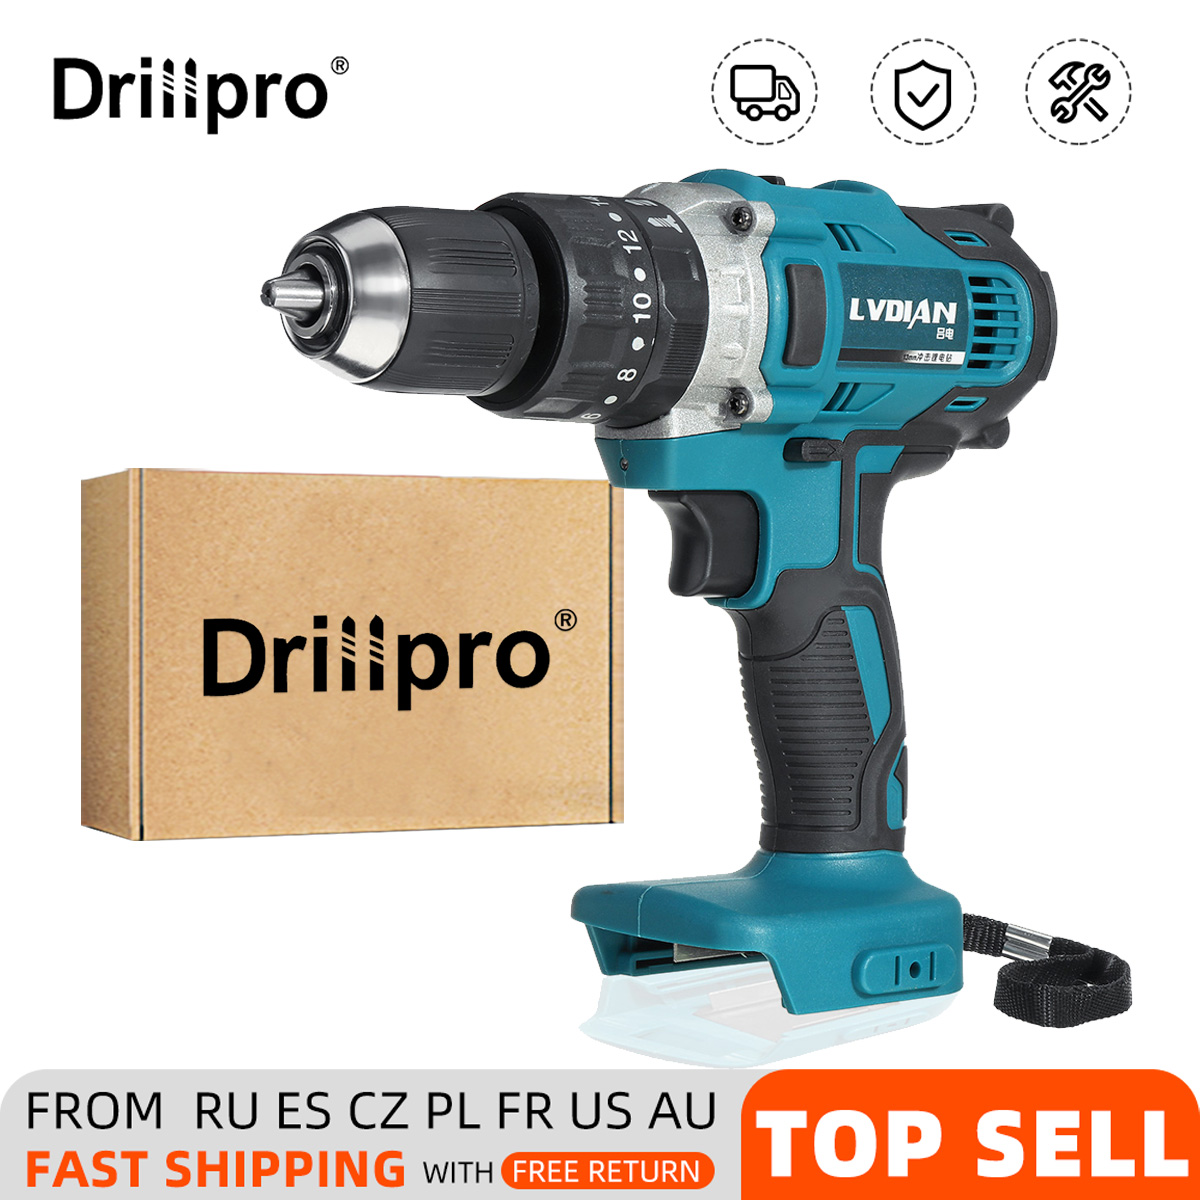 Drillpro 3 In 1 Electric Cordless Impact Drill 13mm 2-Speed Rechargable Electric Screwdriver For 18V Makita Battery